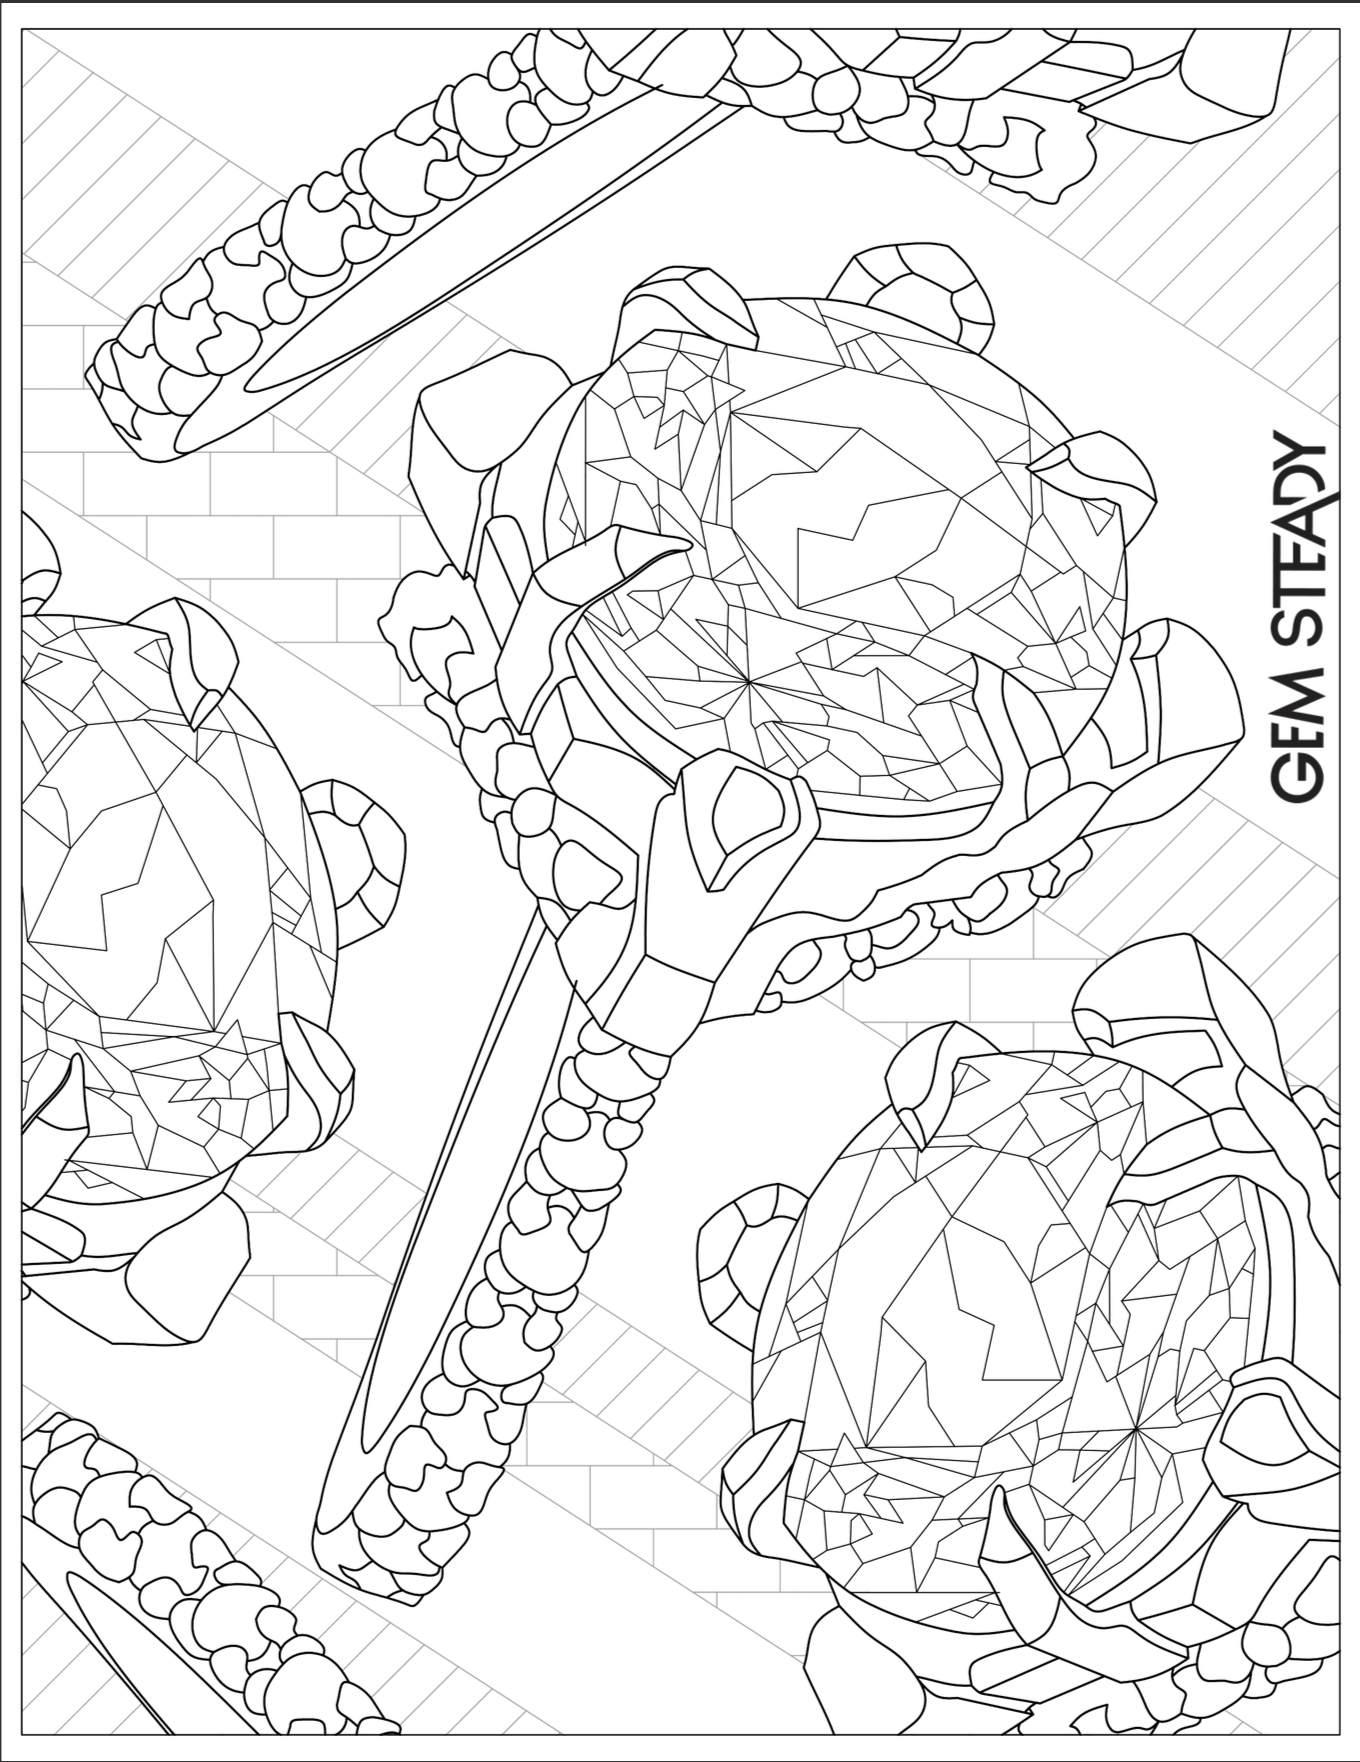 Download and print this FREE coloring sheet!